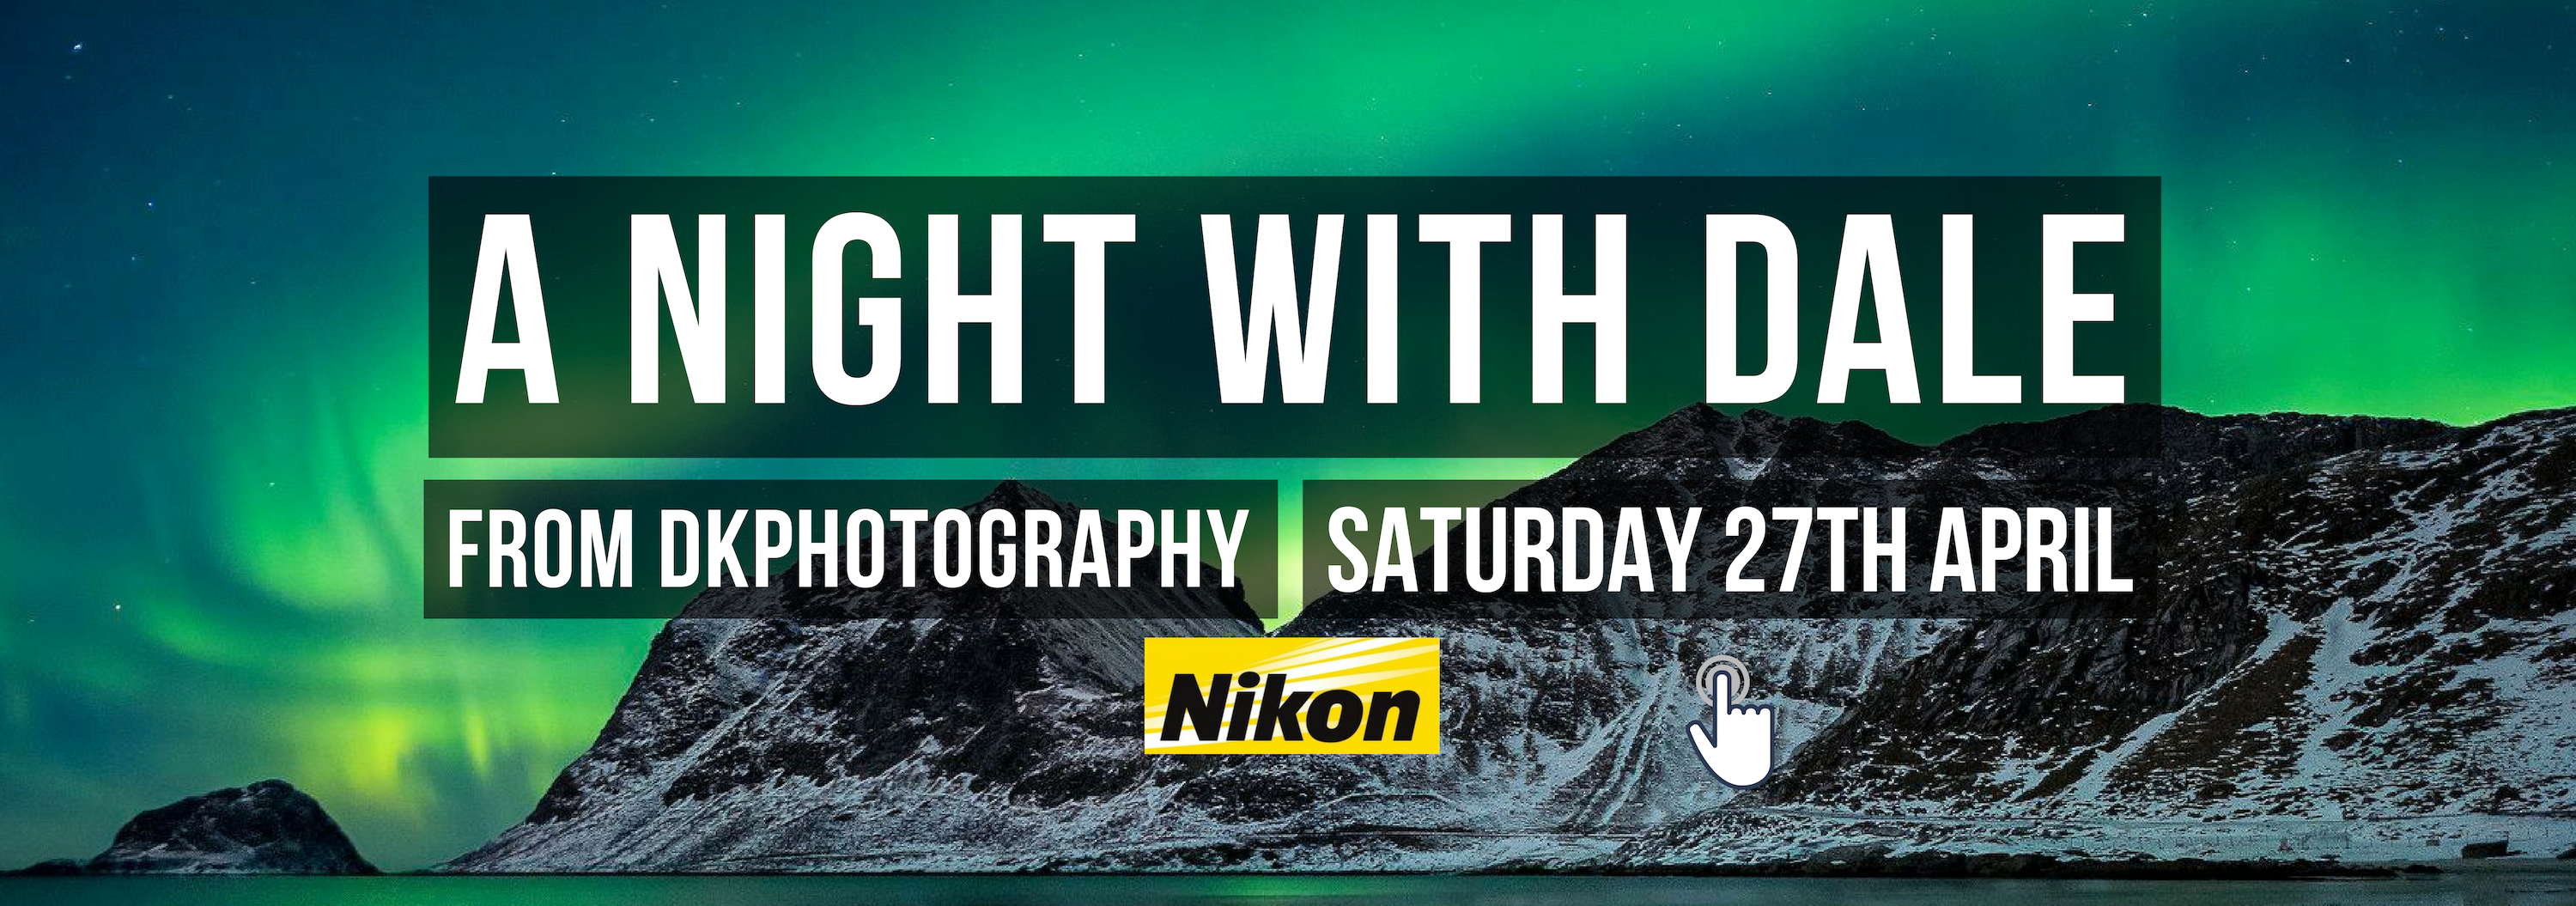 A Night With Dale Sharpe from DKPhotography + Nikon